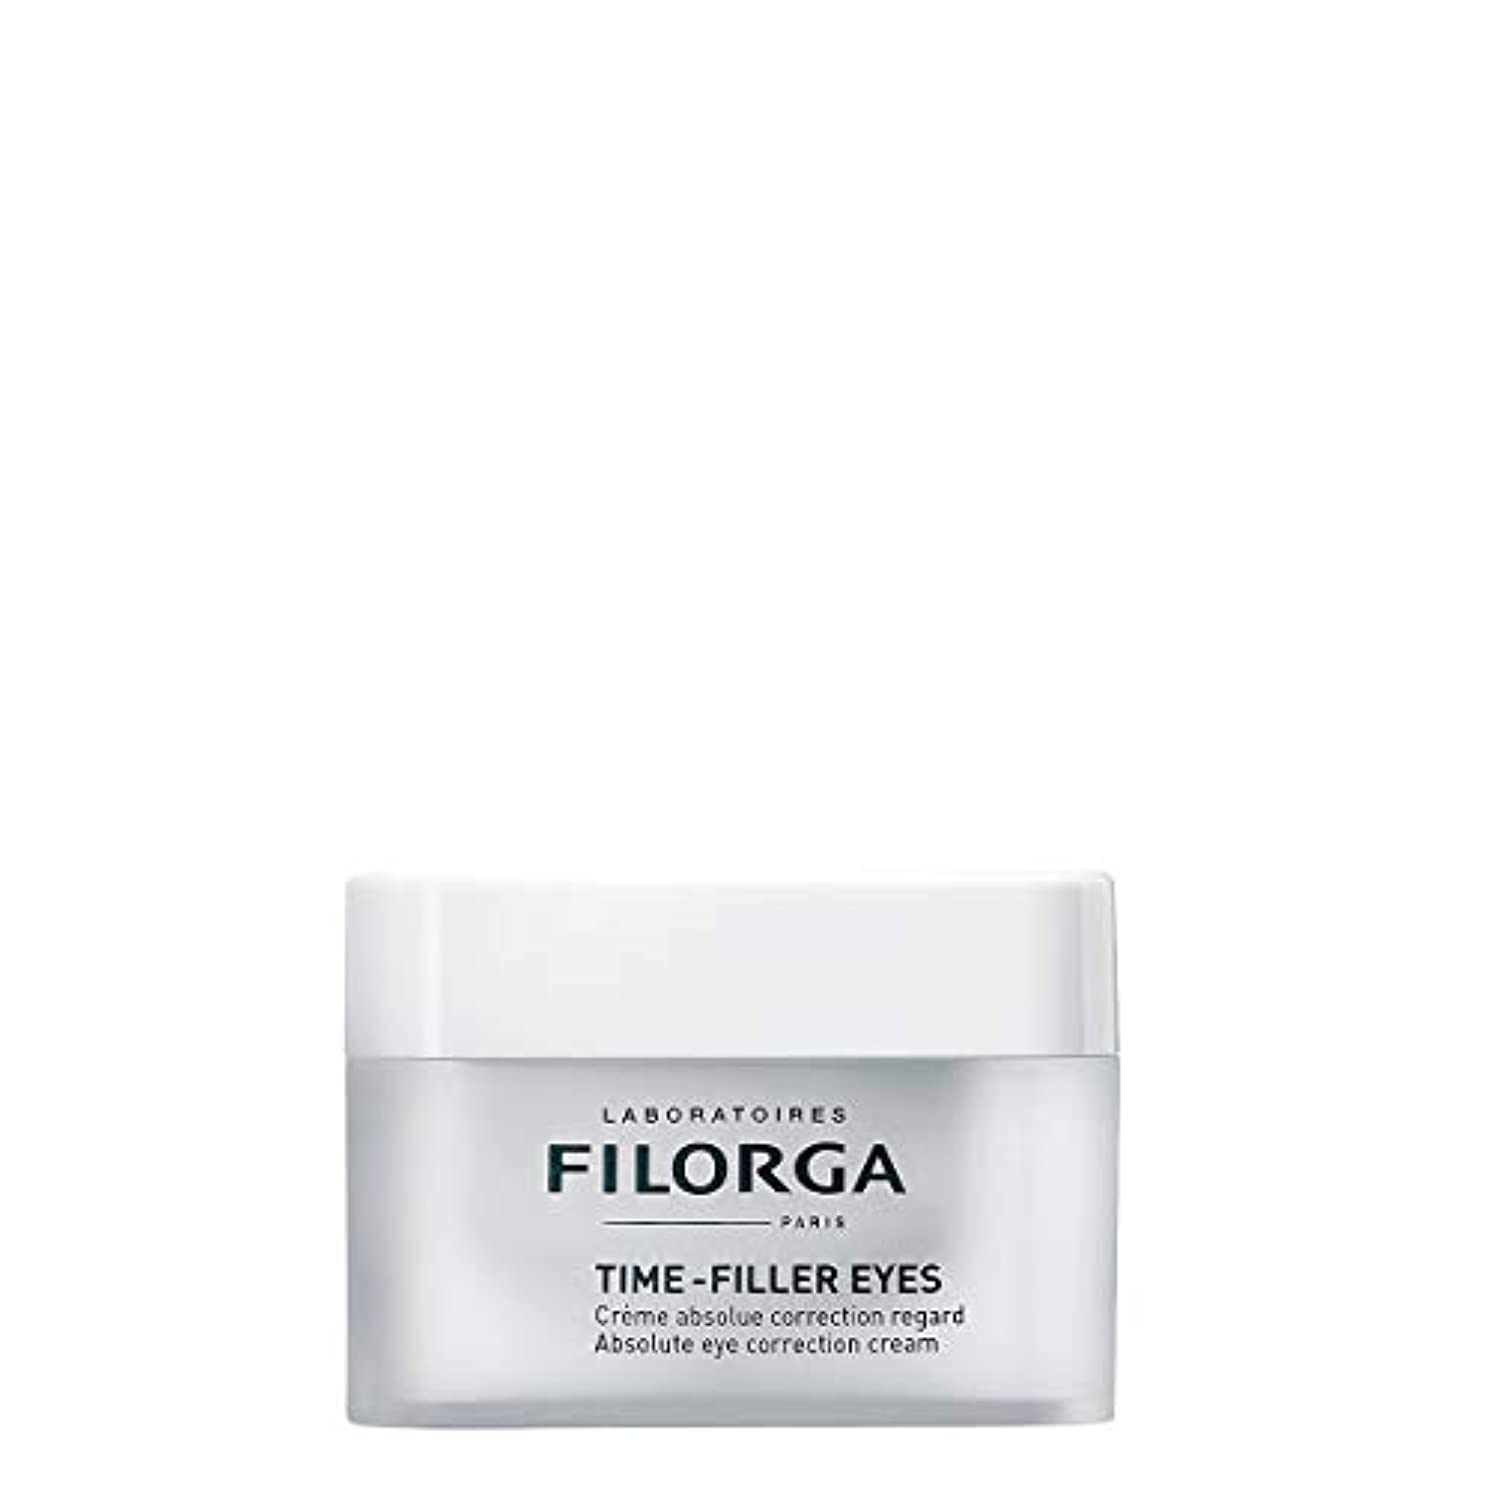 Filorga Time-Filler Eyes Crema Absoluta Corrección Contorno De Ojos 15Ml